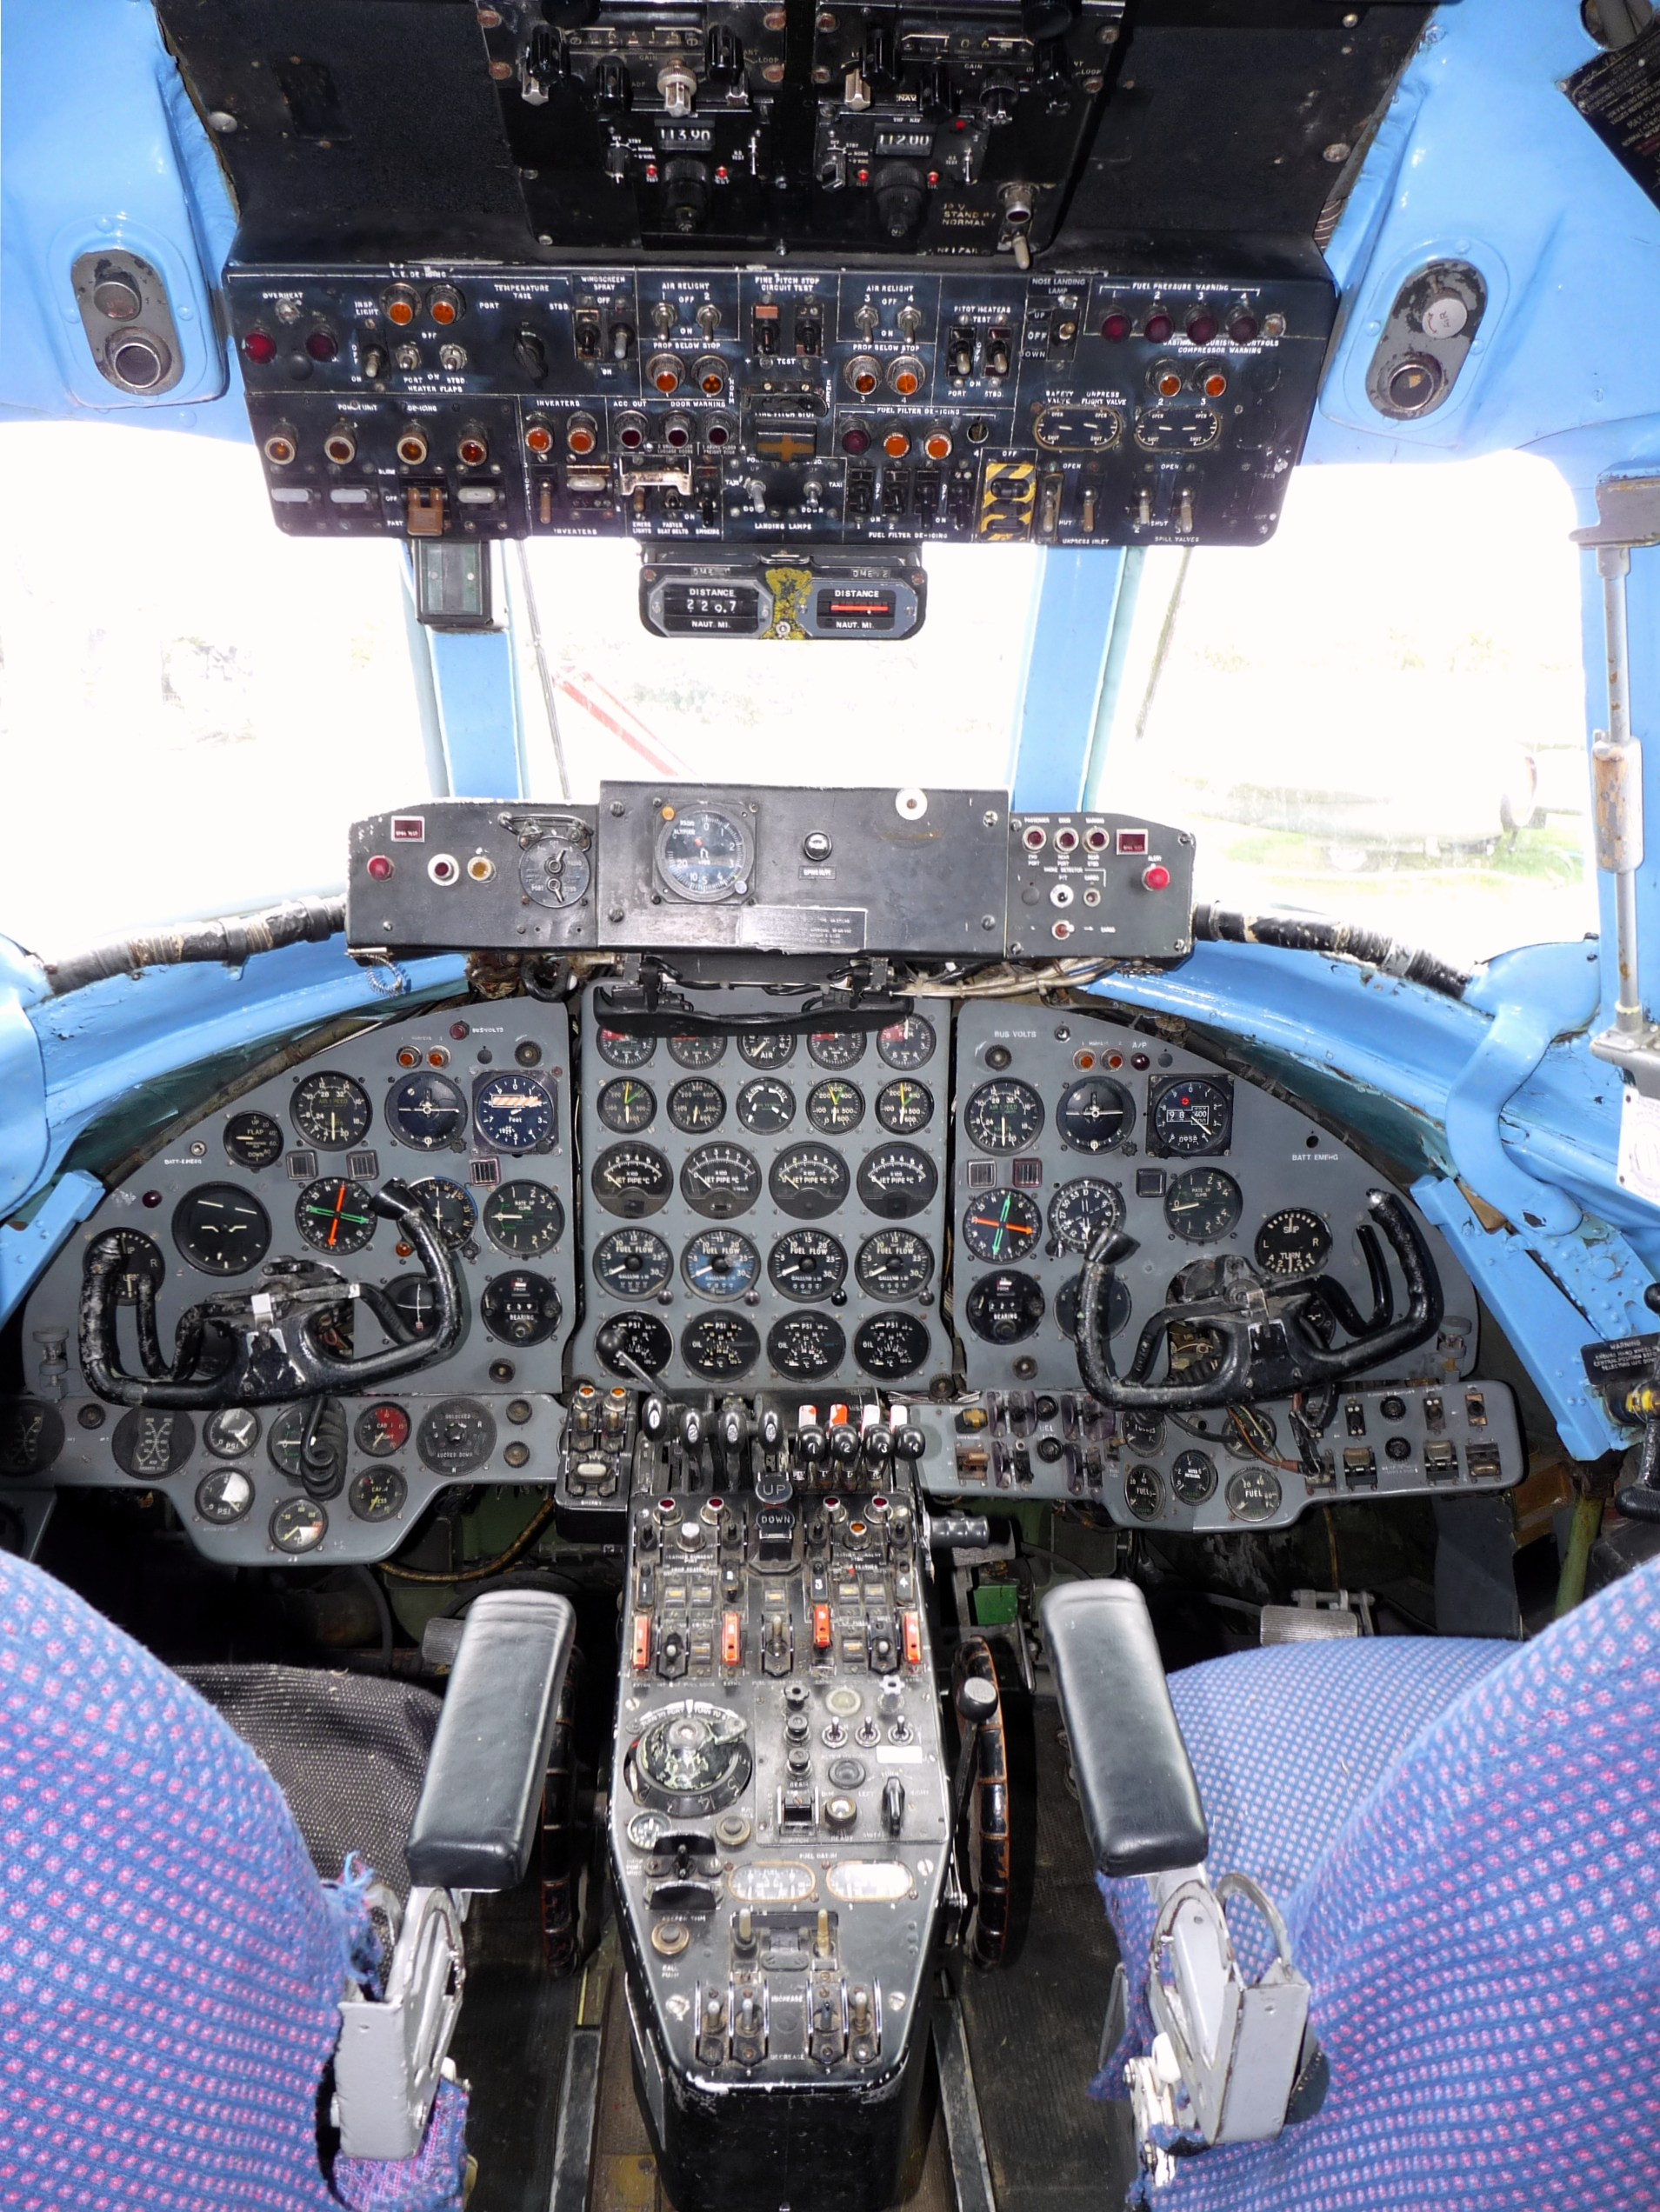 Bournemouth Aviation Museum >> File:Vickers Viscount 806 G-AOYN G-OPAS c-n 263 Cockpit.jpg - Wikimedia Commons